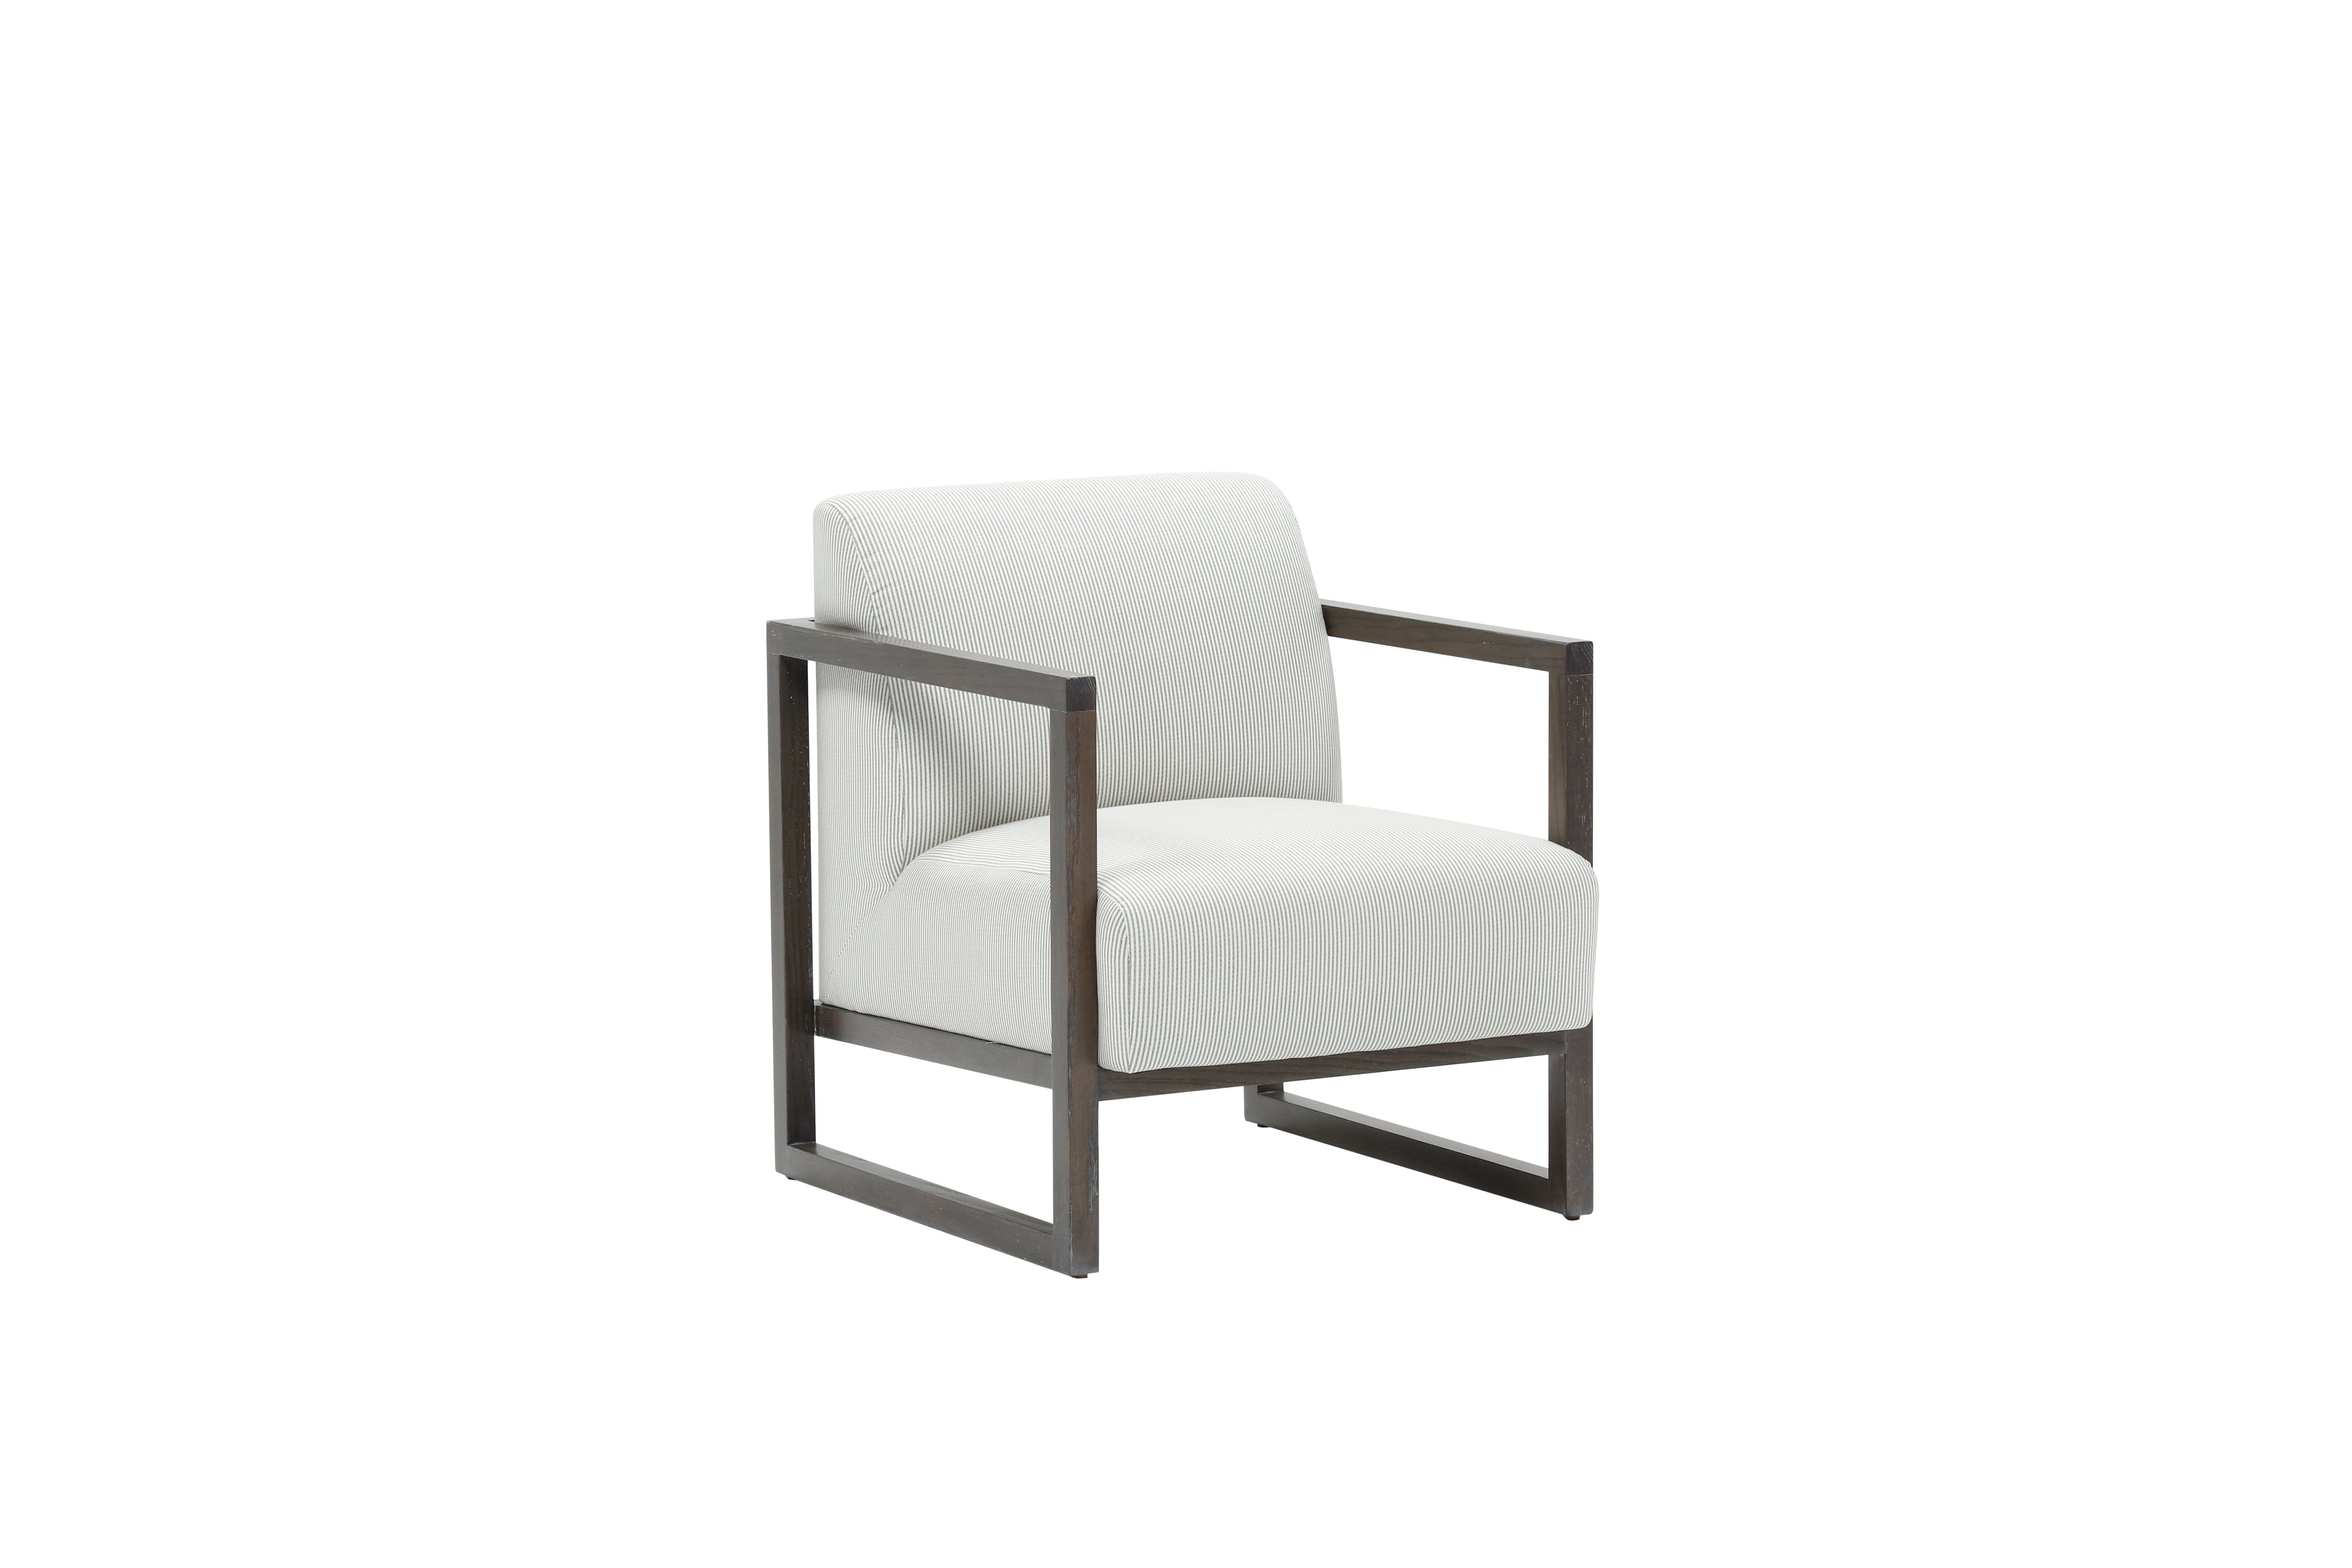 Nate Berkus Just Launched A Home Collection With Hubby Jeremiah With Liv Arm Sofa Chairs By Nate Berkus And Jeremiah Brent (Photo 13 of 25)